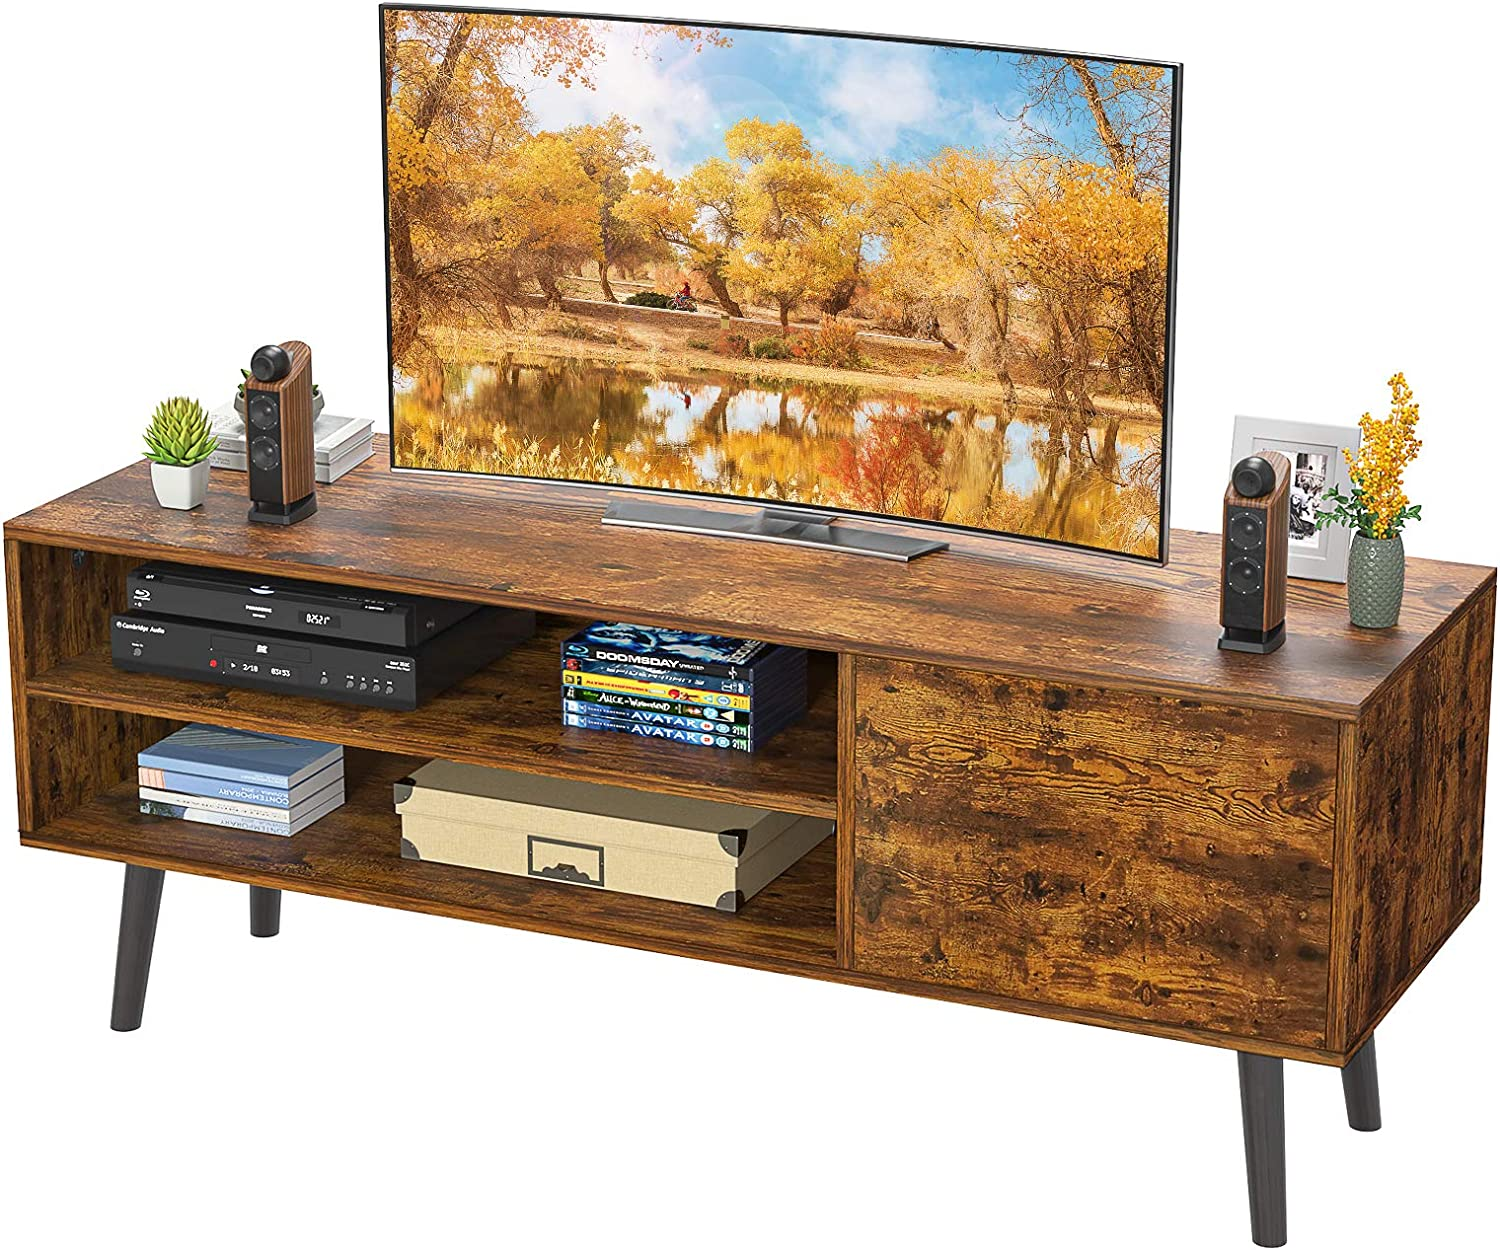 "Homfio TV Stand for up to 55"" TV, 2-Tier TV Console Stand Storage Entertainment Center and Cabinet Industrial Style TV Console Gaming Consoles Mid Century Wood TV Stand for Living Room Bedroom"